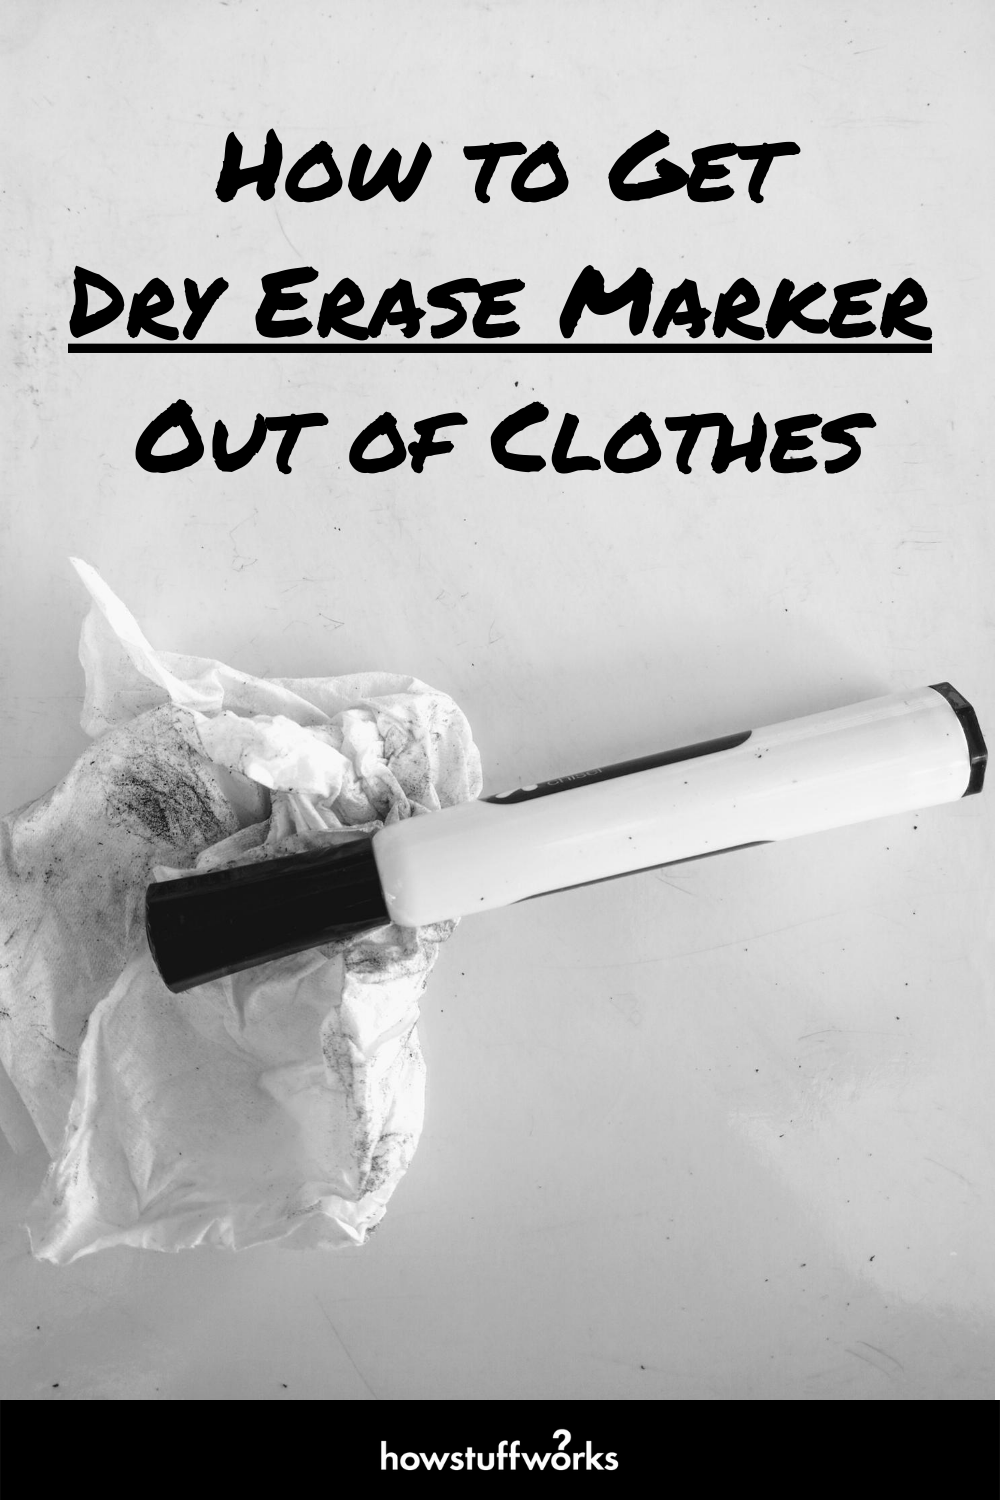 How To Get Dry Erase Marker Out Of Clothes Dry Erase Markers Dry Erase Markers